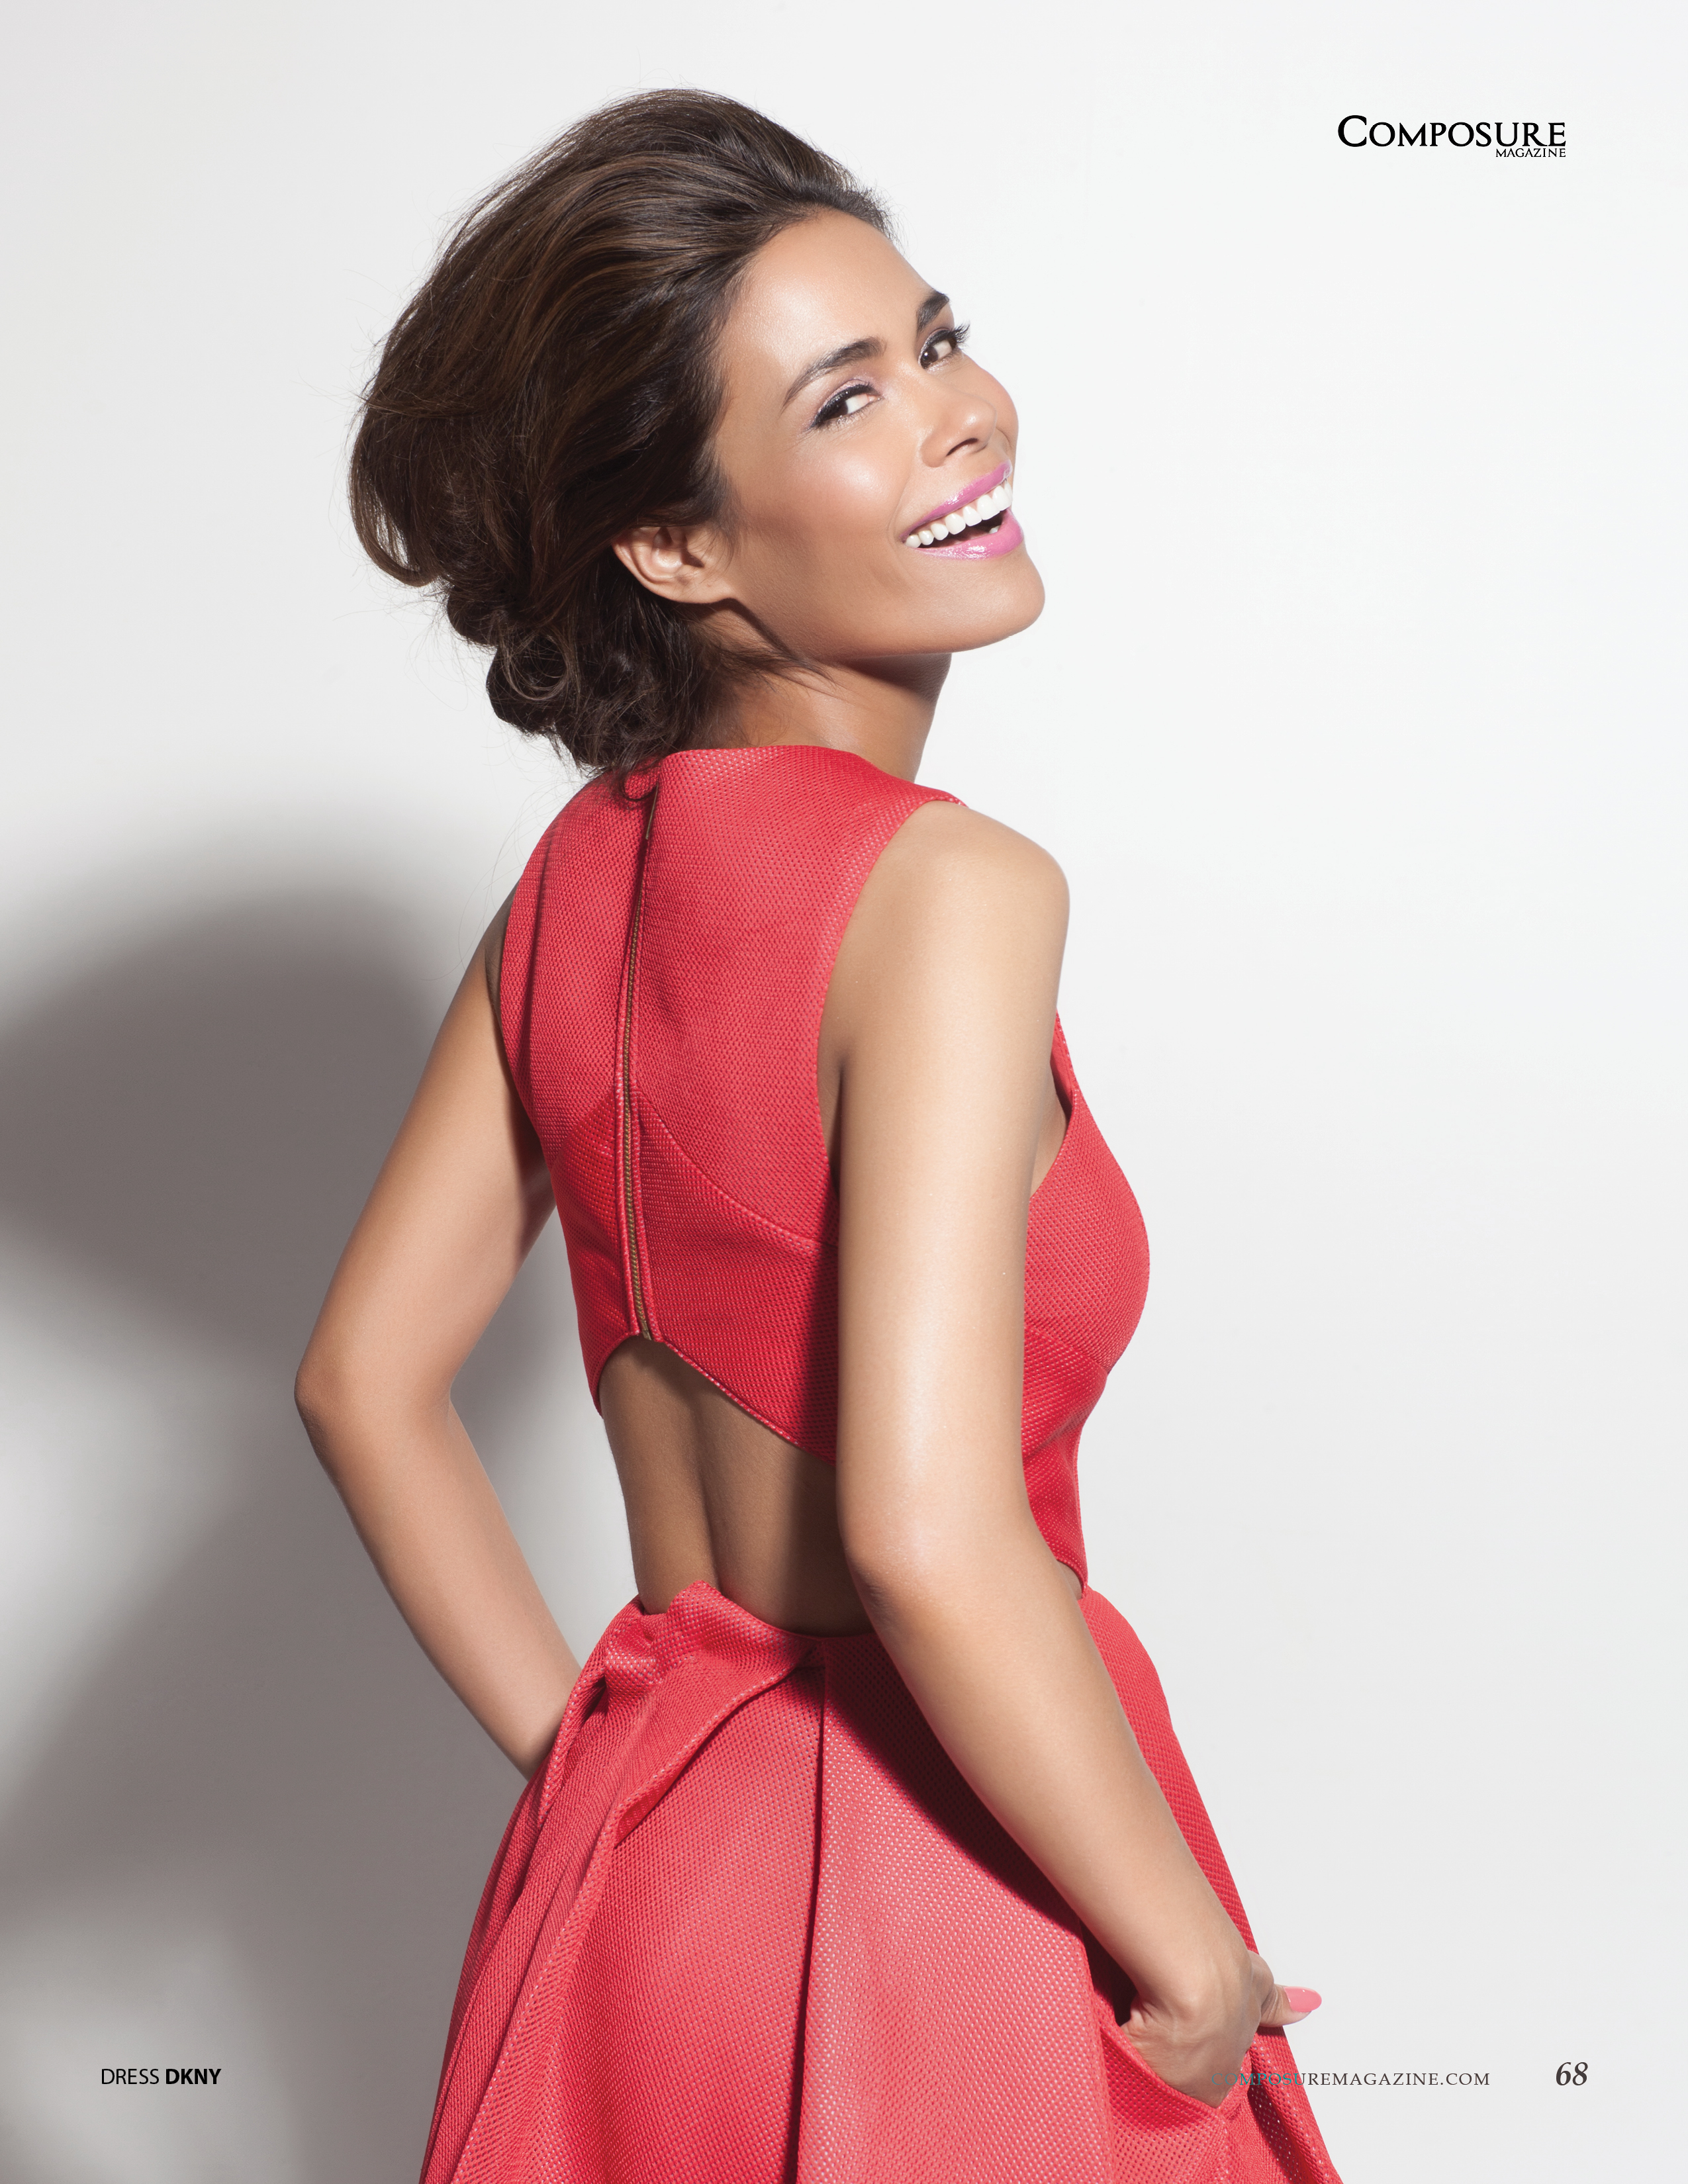 Daniella Alonso - ComposureMagazine